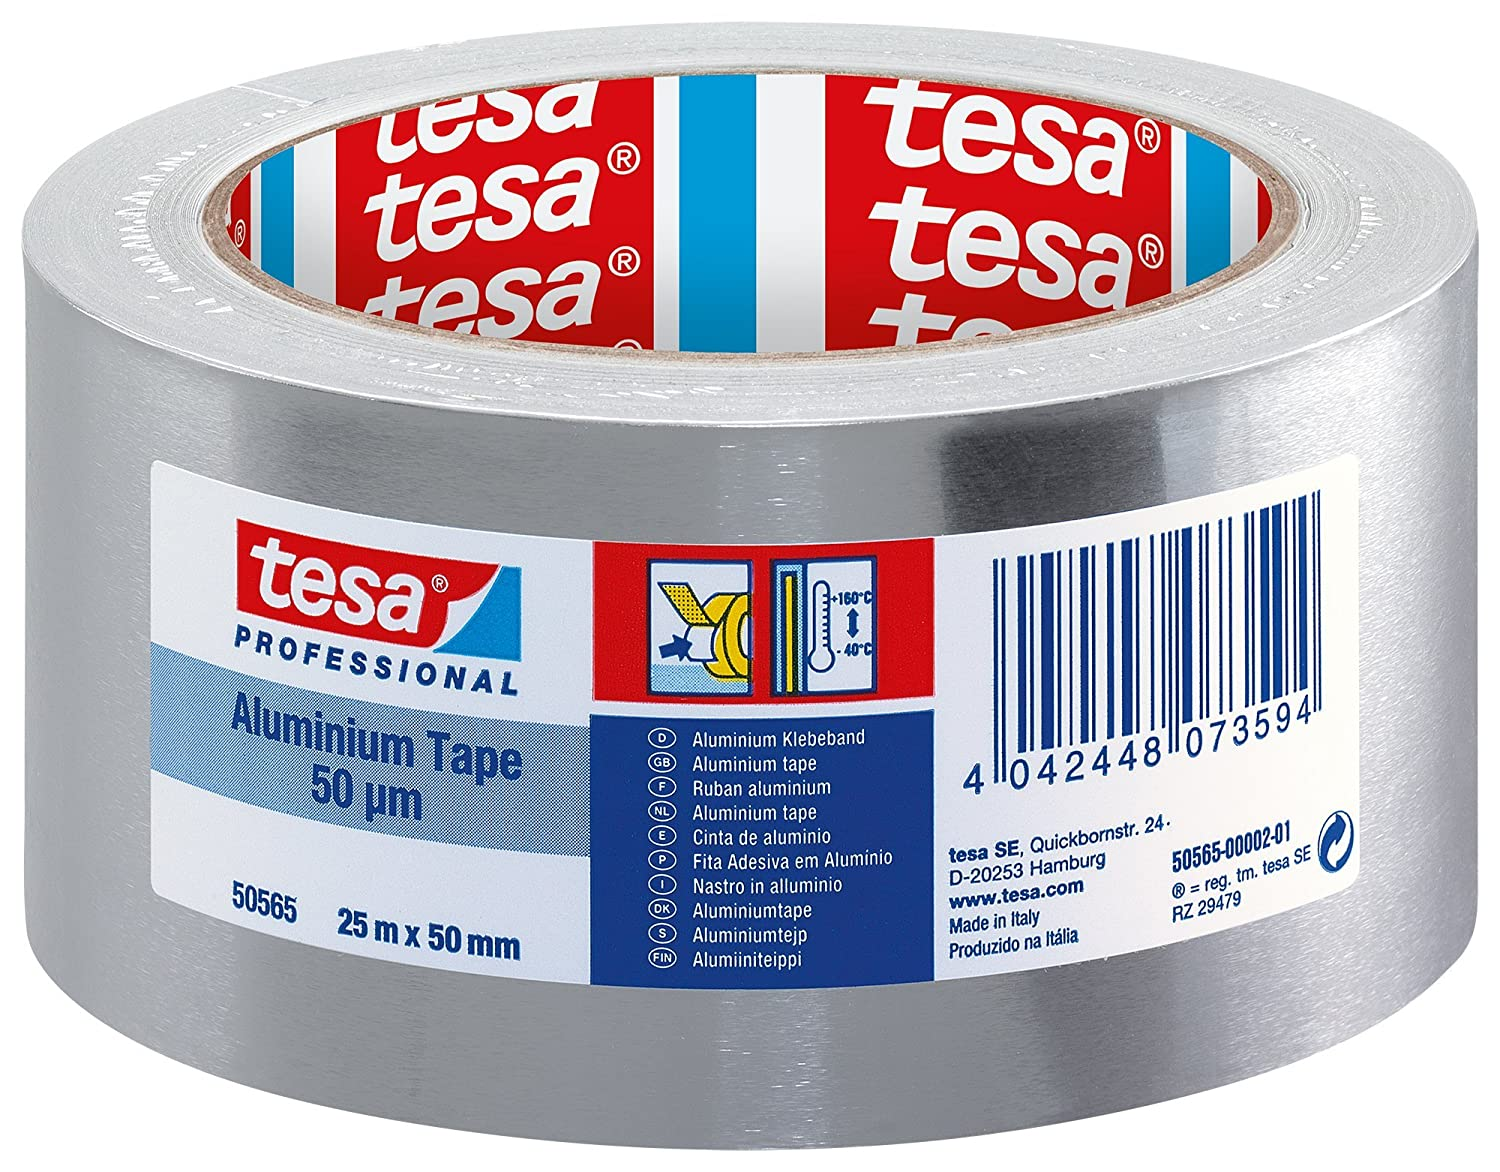 tesa Professional Aluminium Foil Tape for Repairing Ducts and Gutters, 50  mm x 25 m: Amazon.co.uk: DIY & Tools